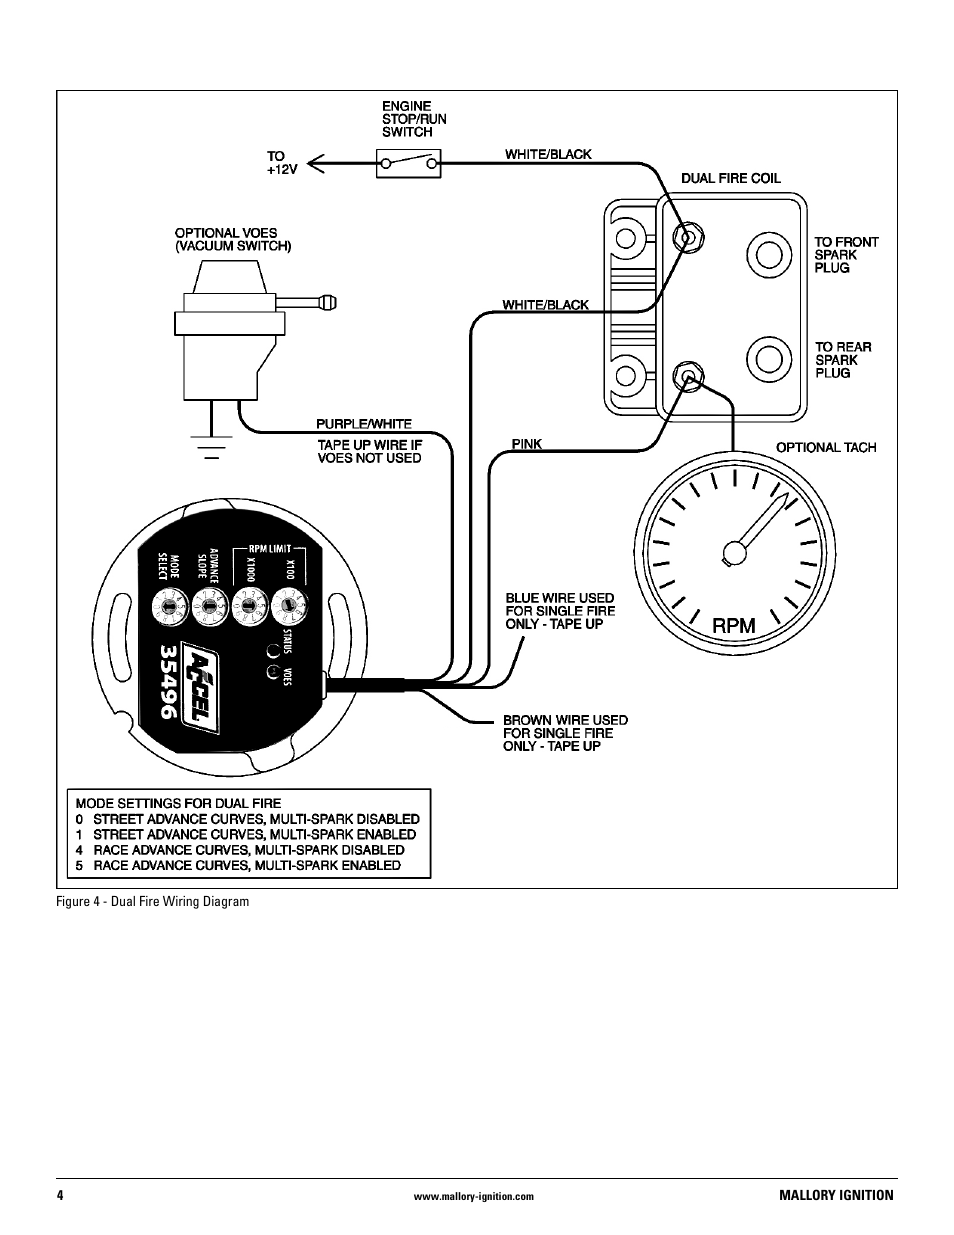 mallory ignition distributor wiring diagram mallory ignition mallory distributor   557 user manual page 4 8  mallory distributor   557 user manual